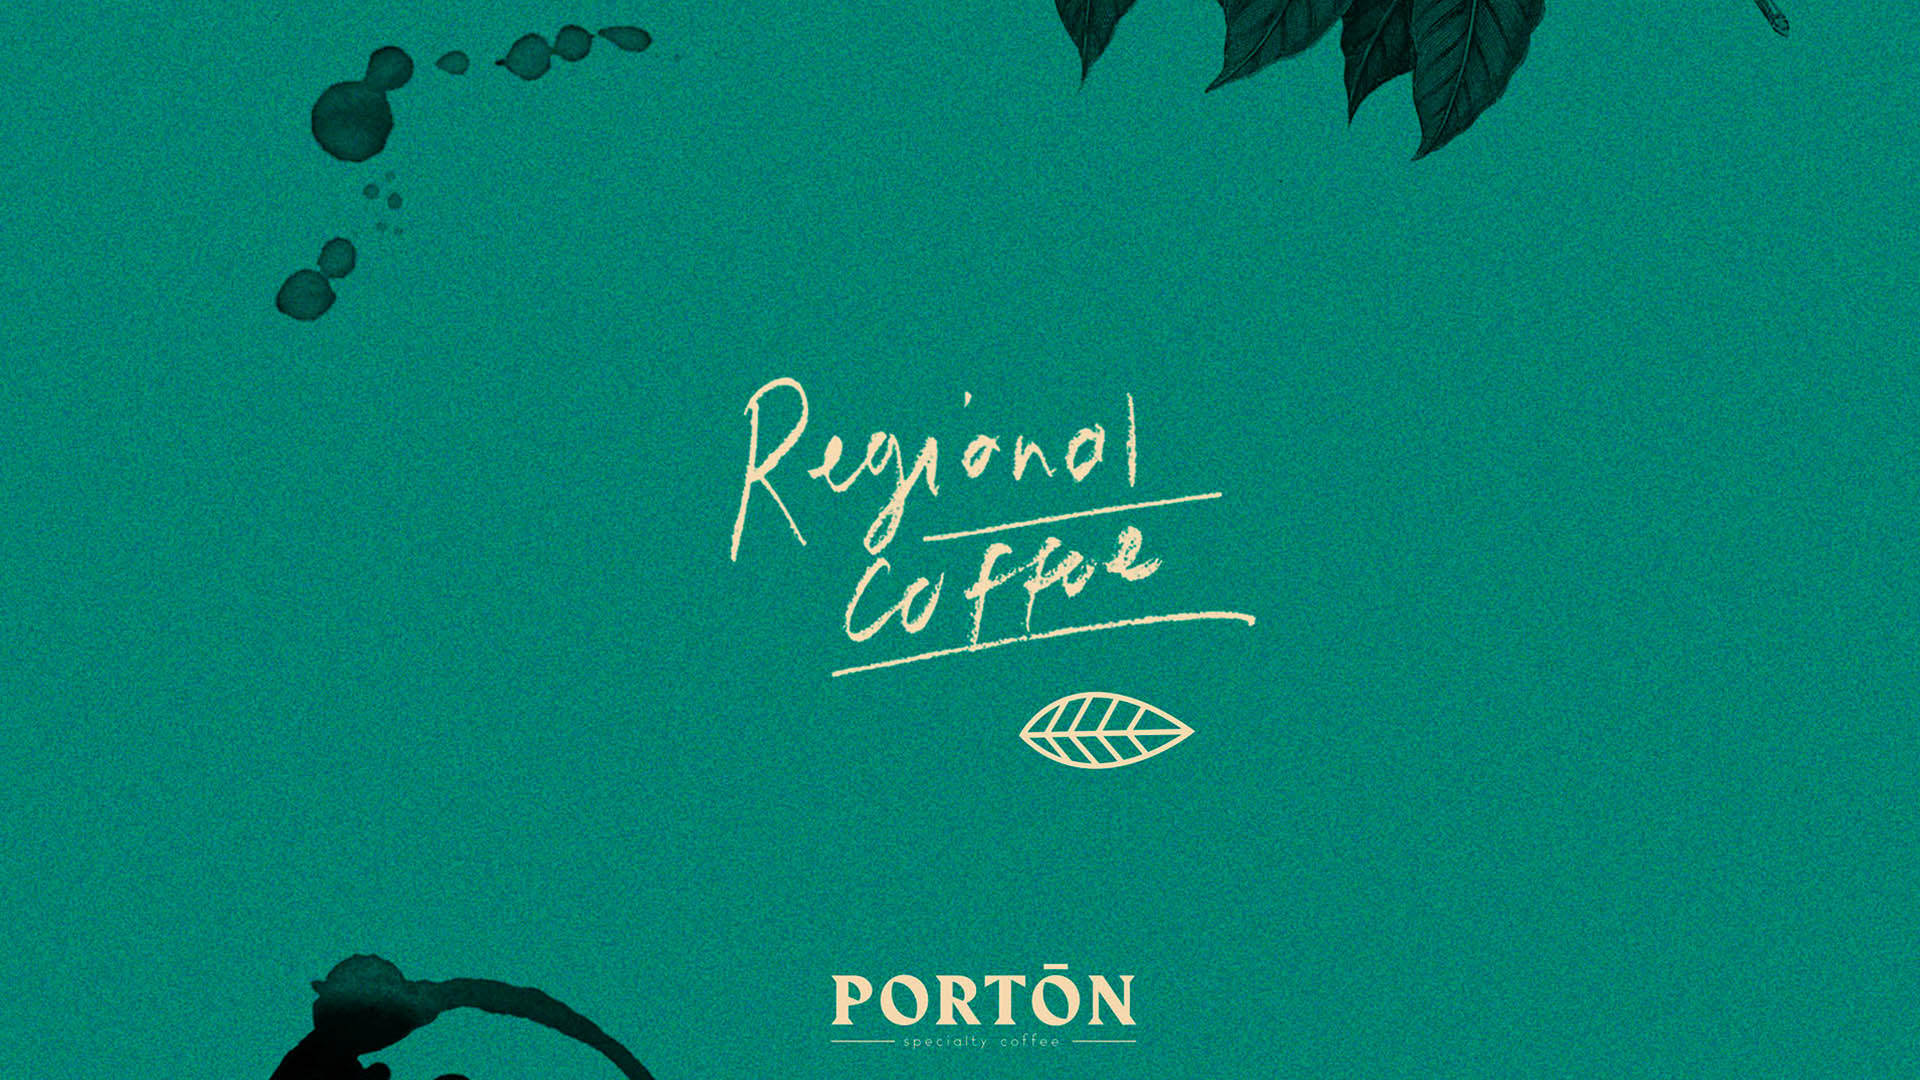 El Porton Coffee